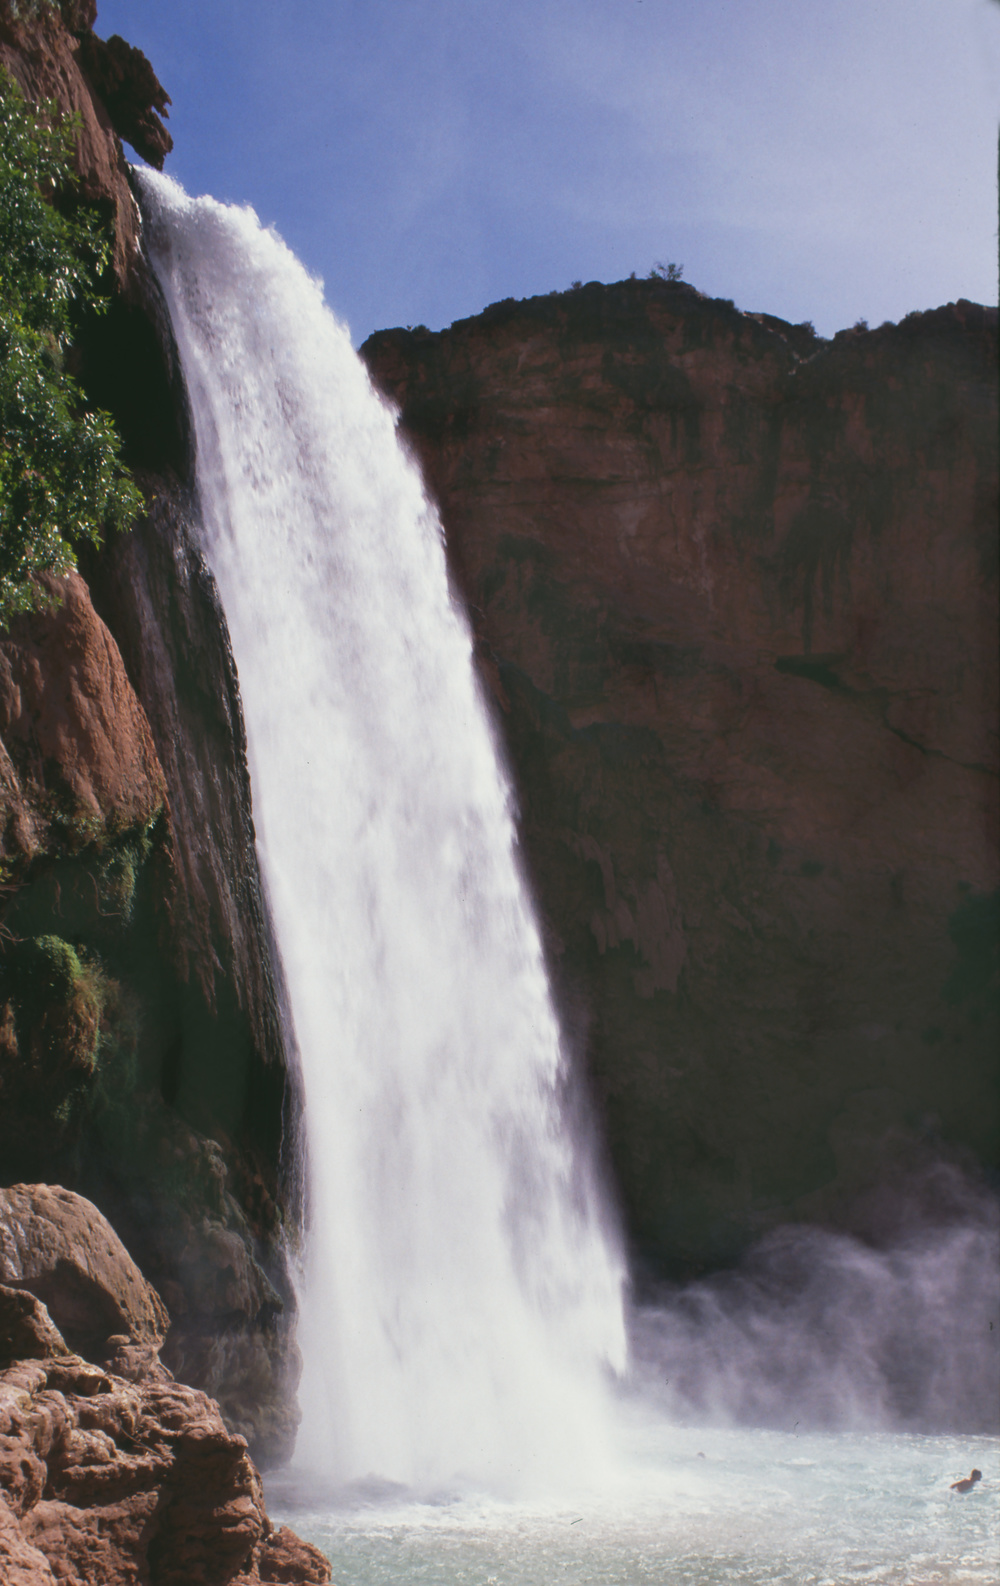 Havasu-falls-side-view-copy.jpg